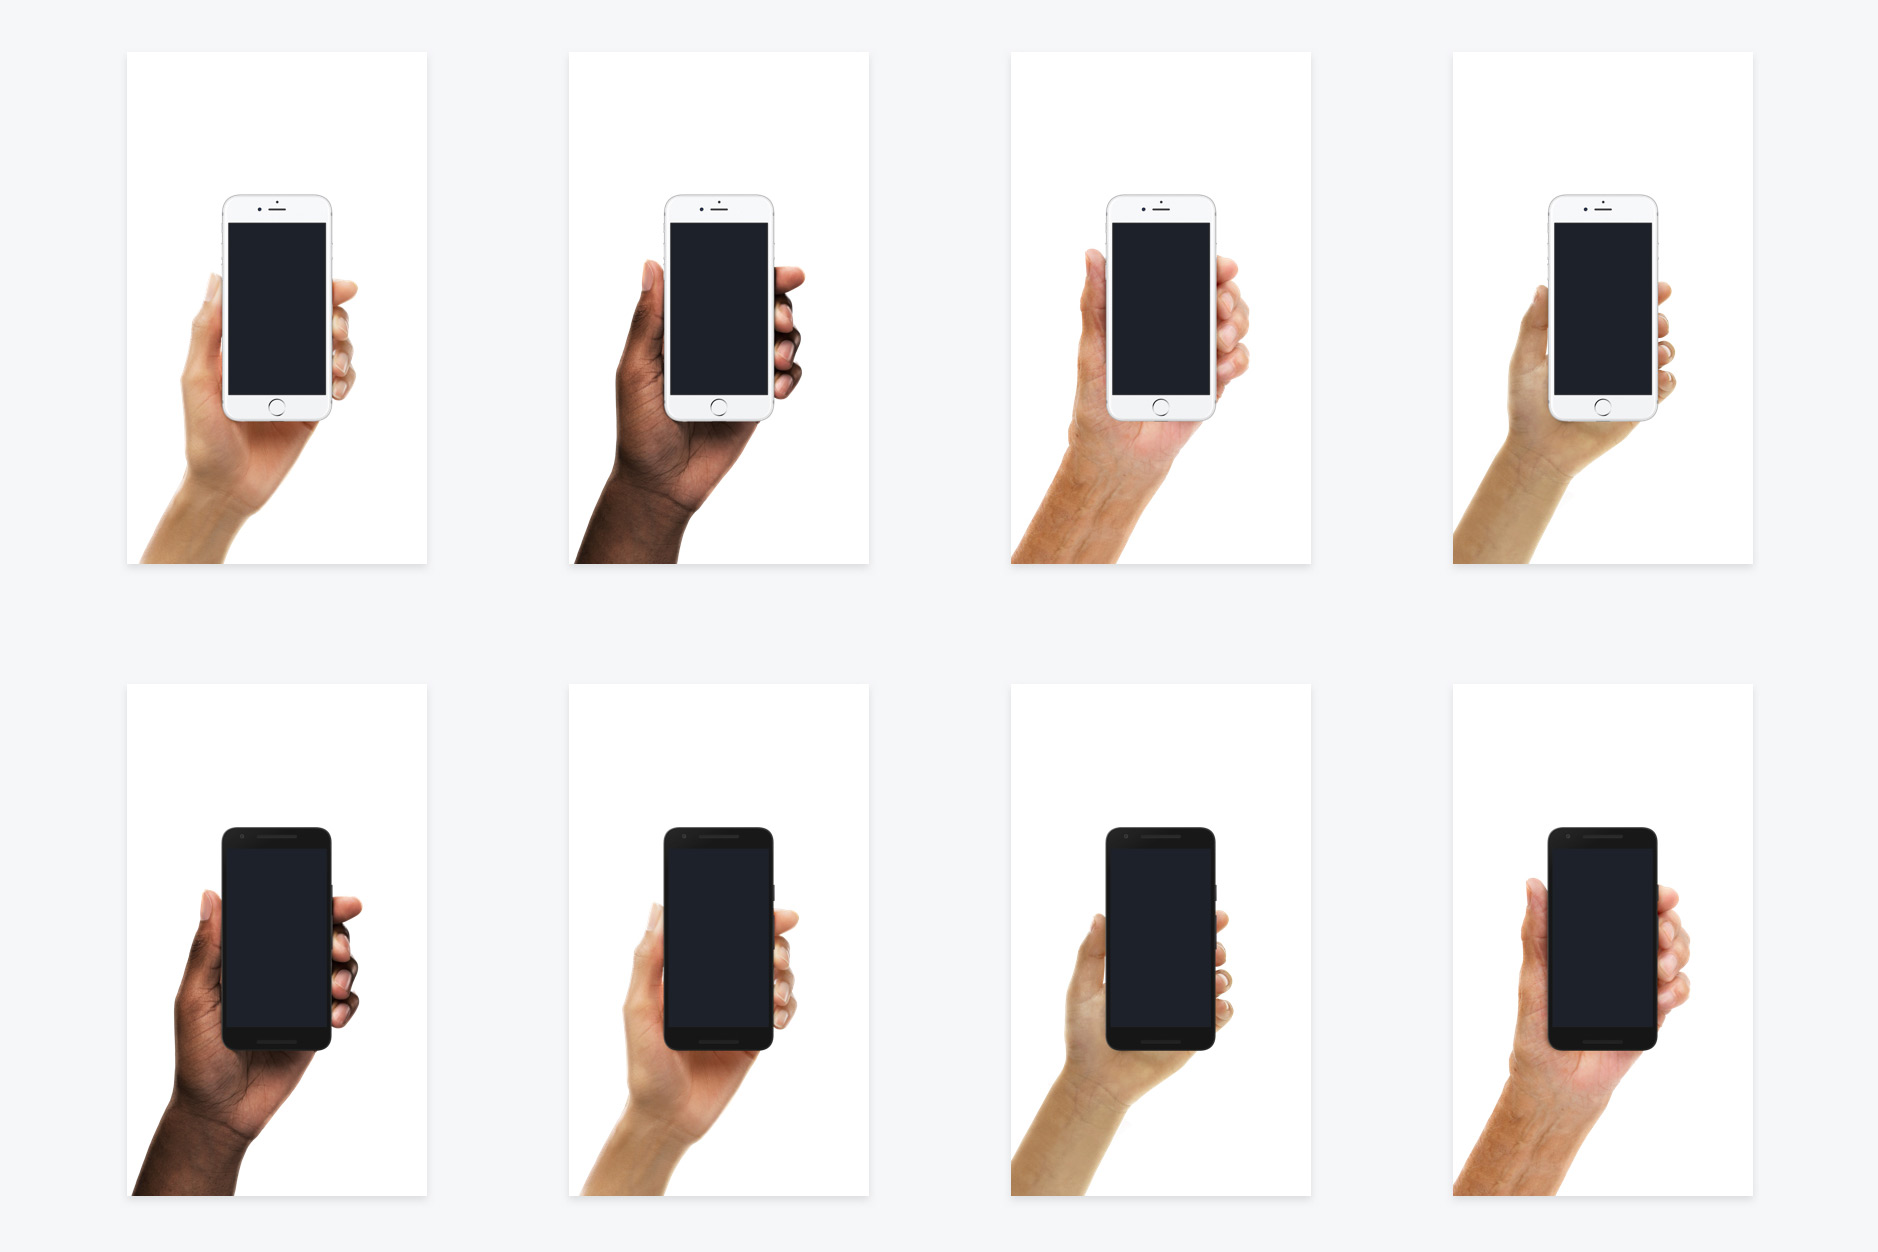 hands and devices by facebook